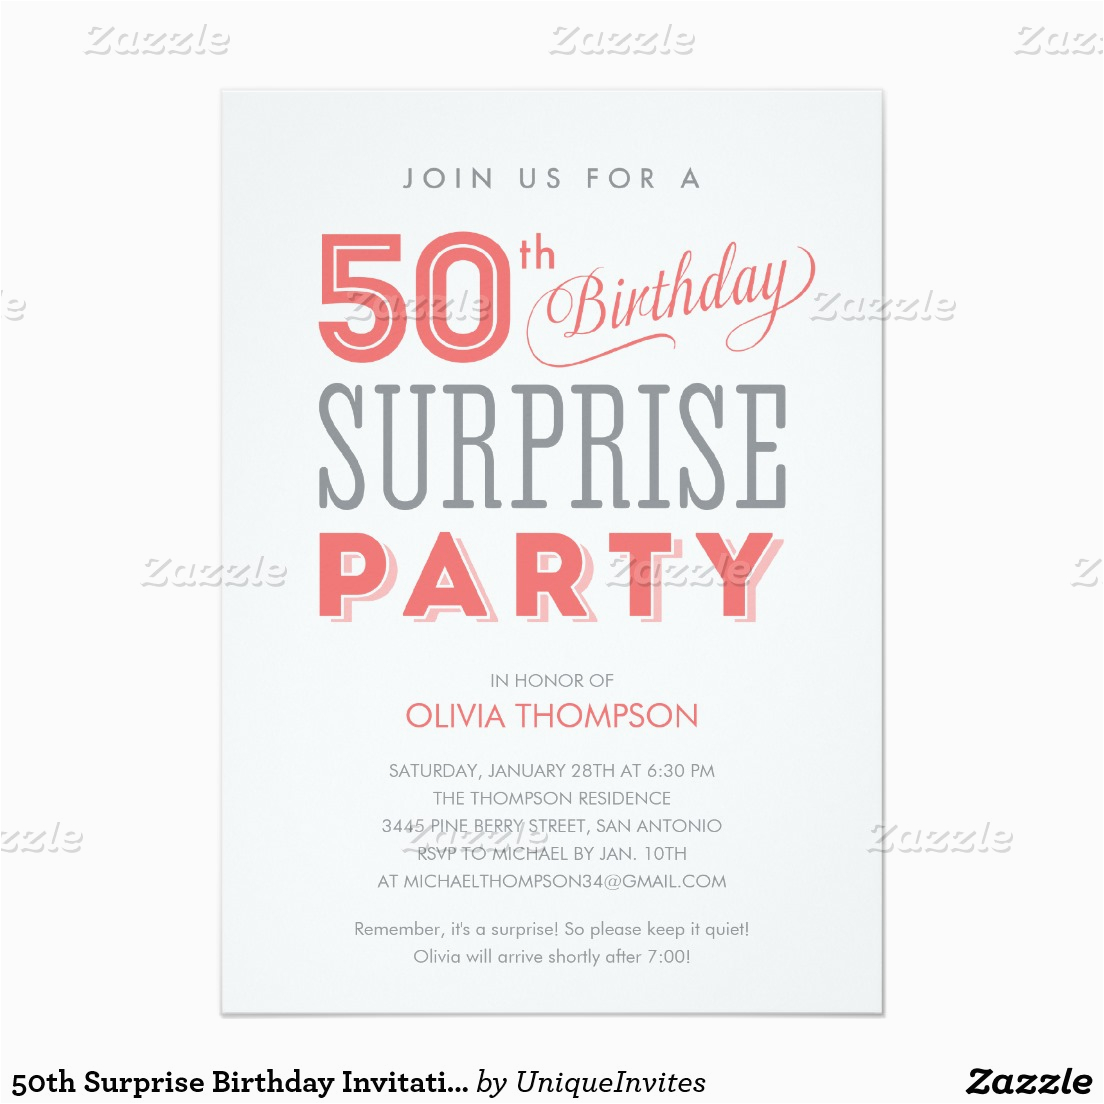 50th Birthday Party Invite Wording Surprise Invitation